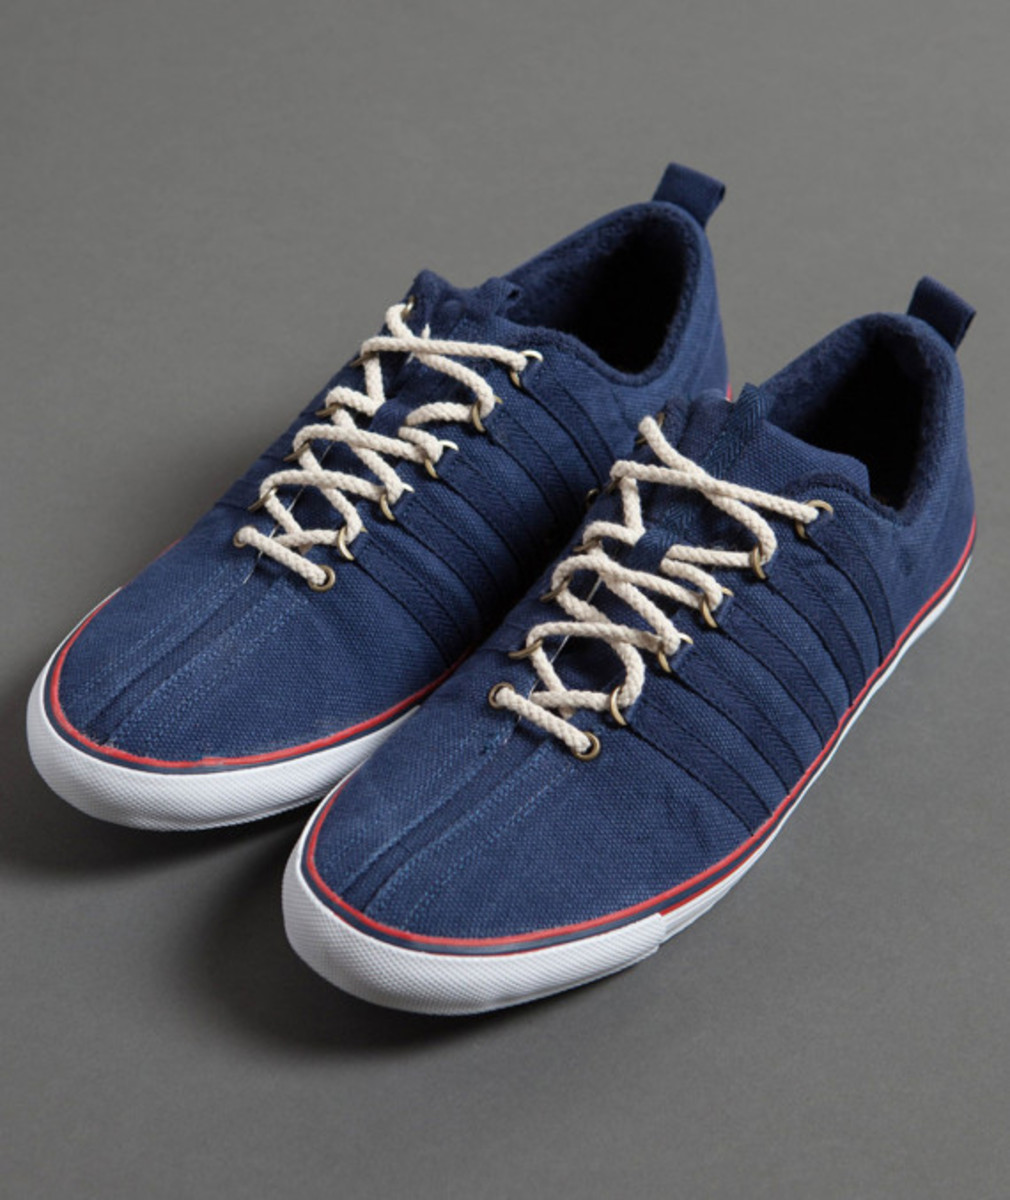 k-swiss-by-billy-reid-spring-summer-2013-collection-17